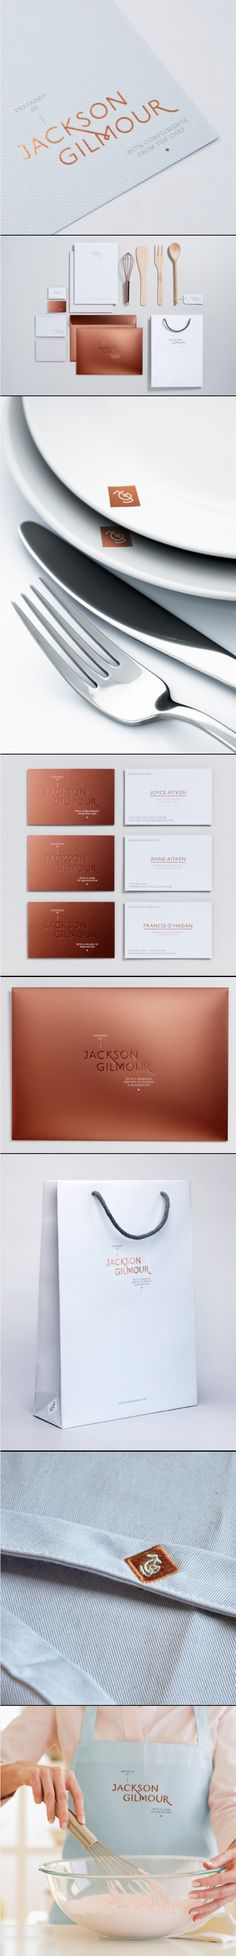 Magpie Studio identity packaging branding anybody hungry after seeing this? PD